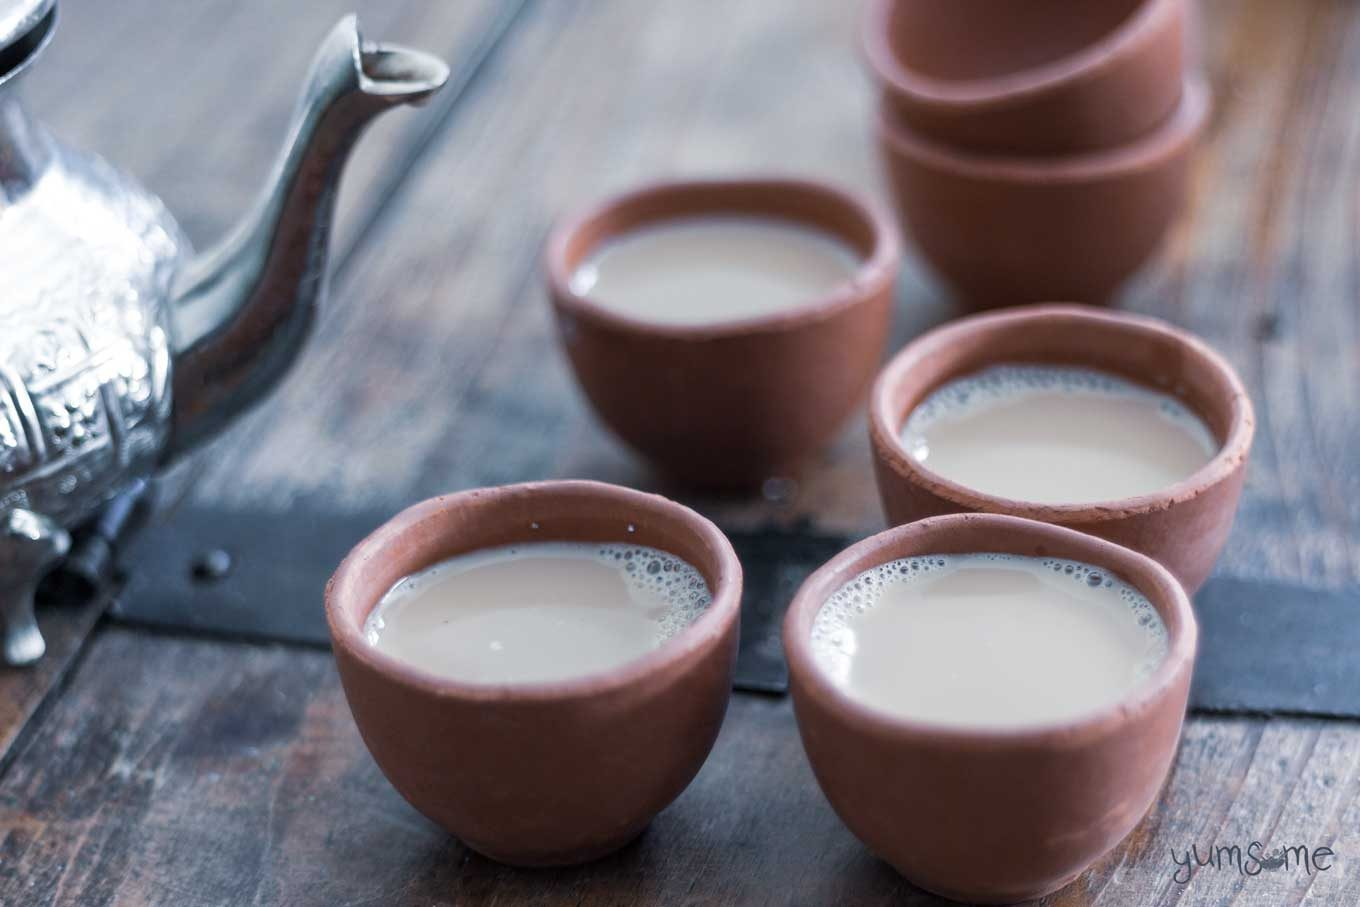 A silver tea pot and four clay cups of masala chai on a wooden table.